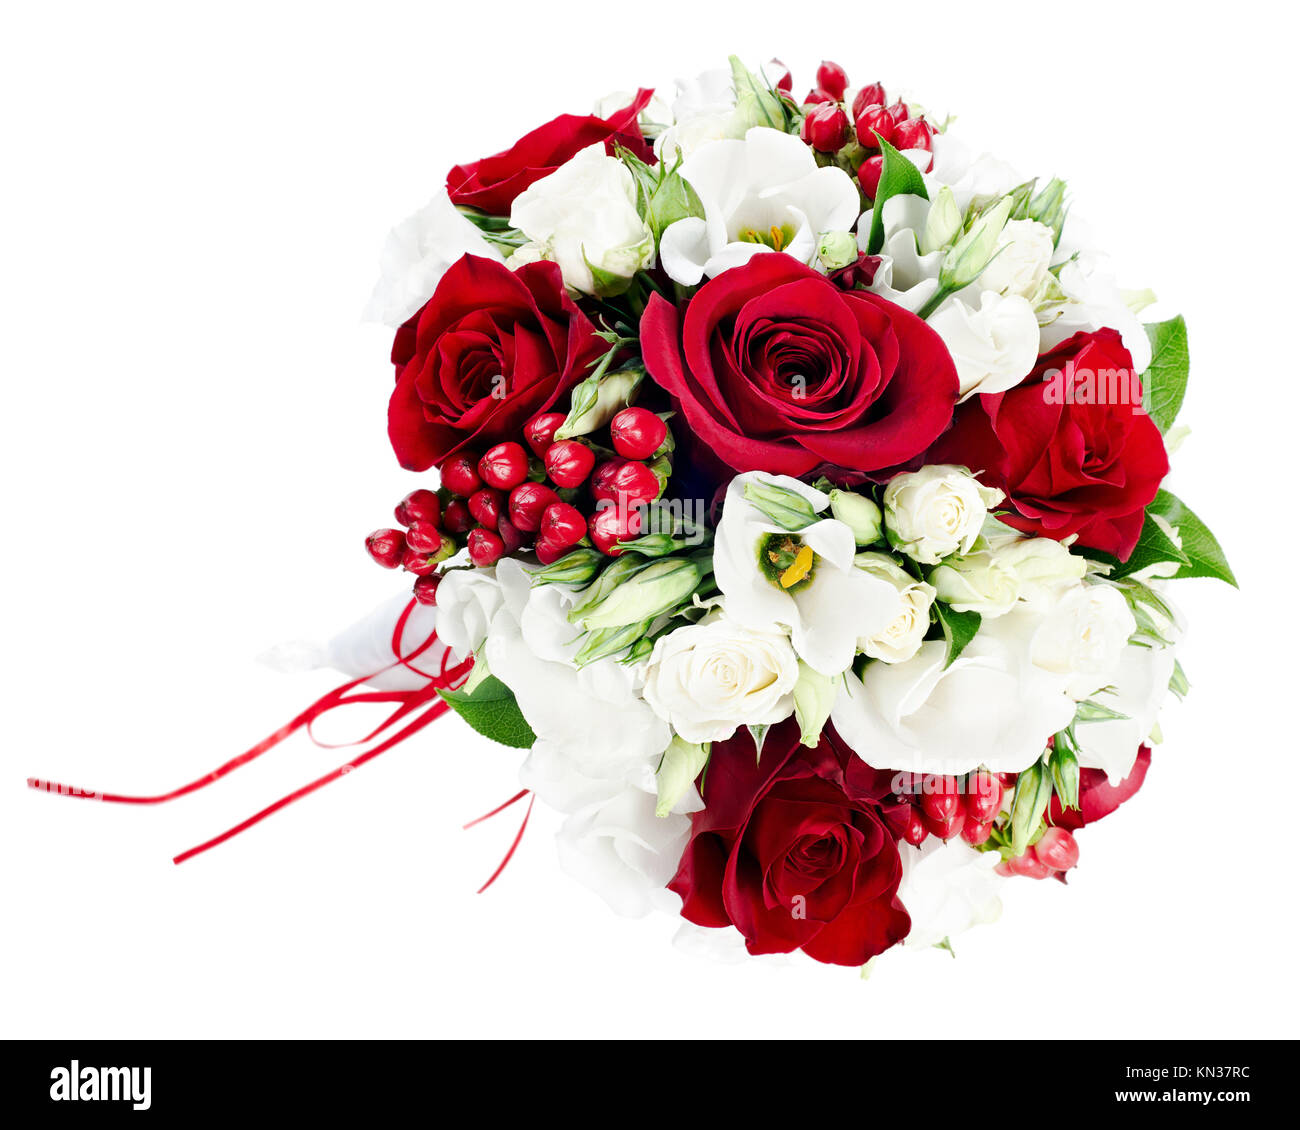 Red And White Bridal Bouquet Stock Photos Red And White Bridal